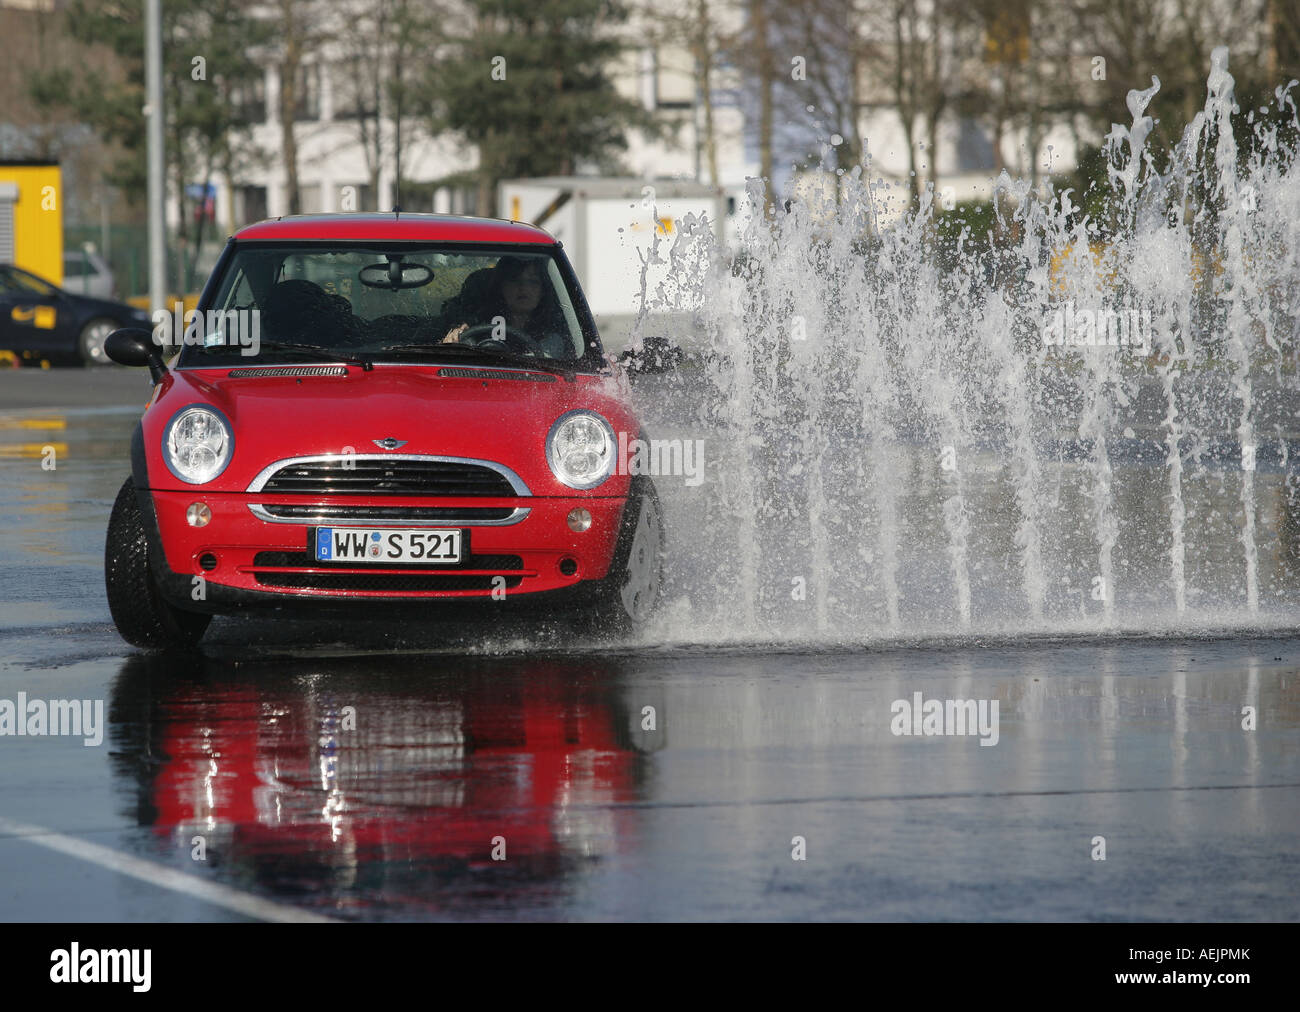 Change manoeuvre at the test course of the german automobileclub ADAC in Koblenz, Rhineland-Palatinate Germany Europe - Stock Image